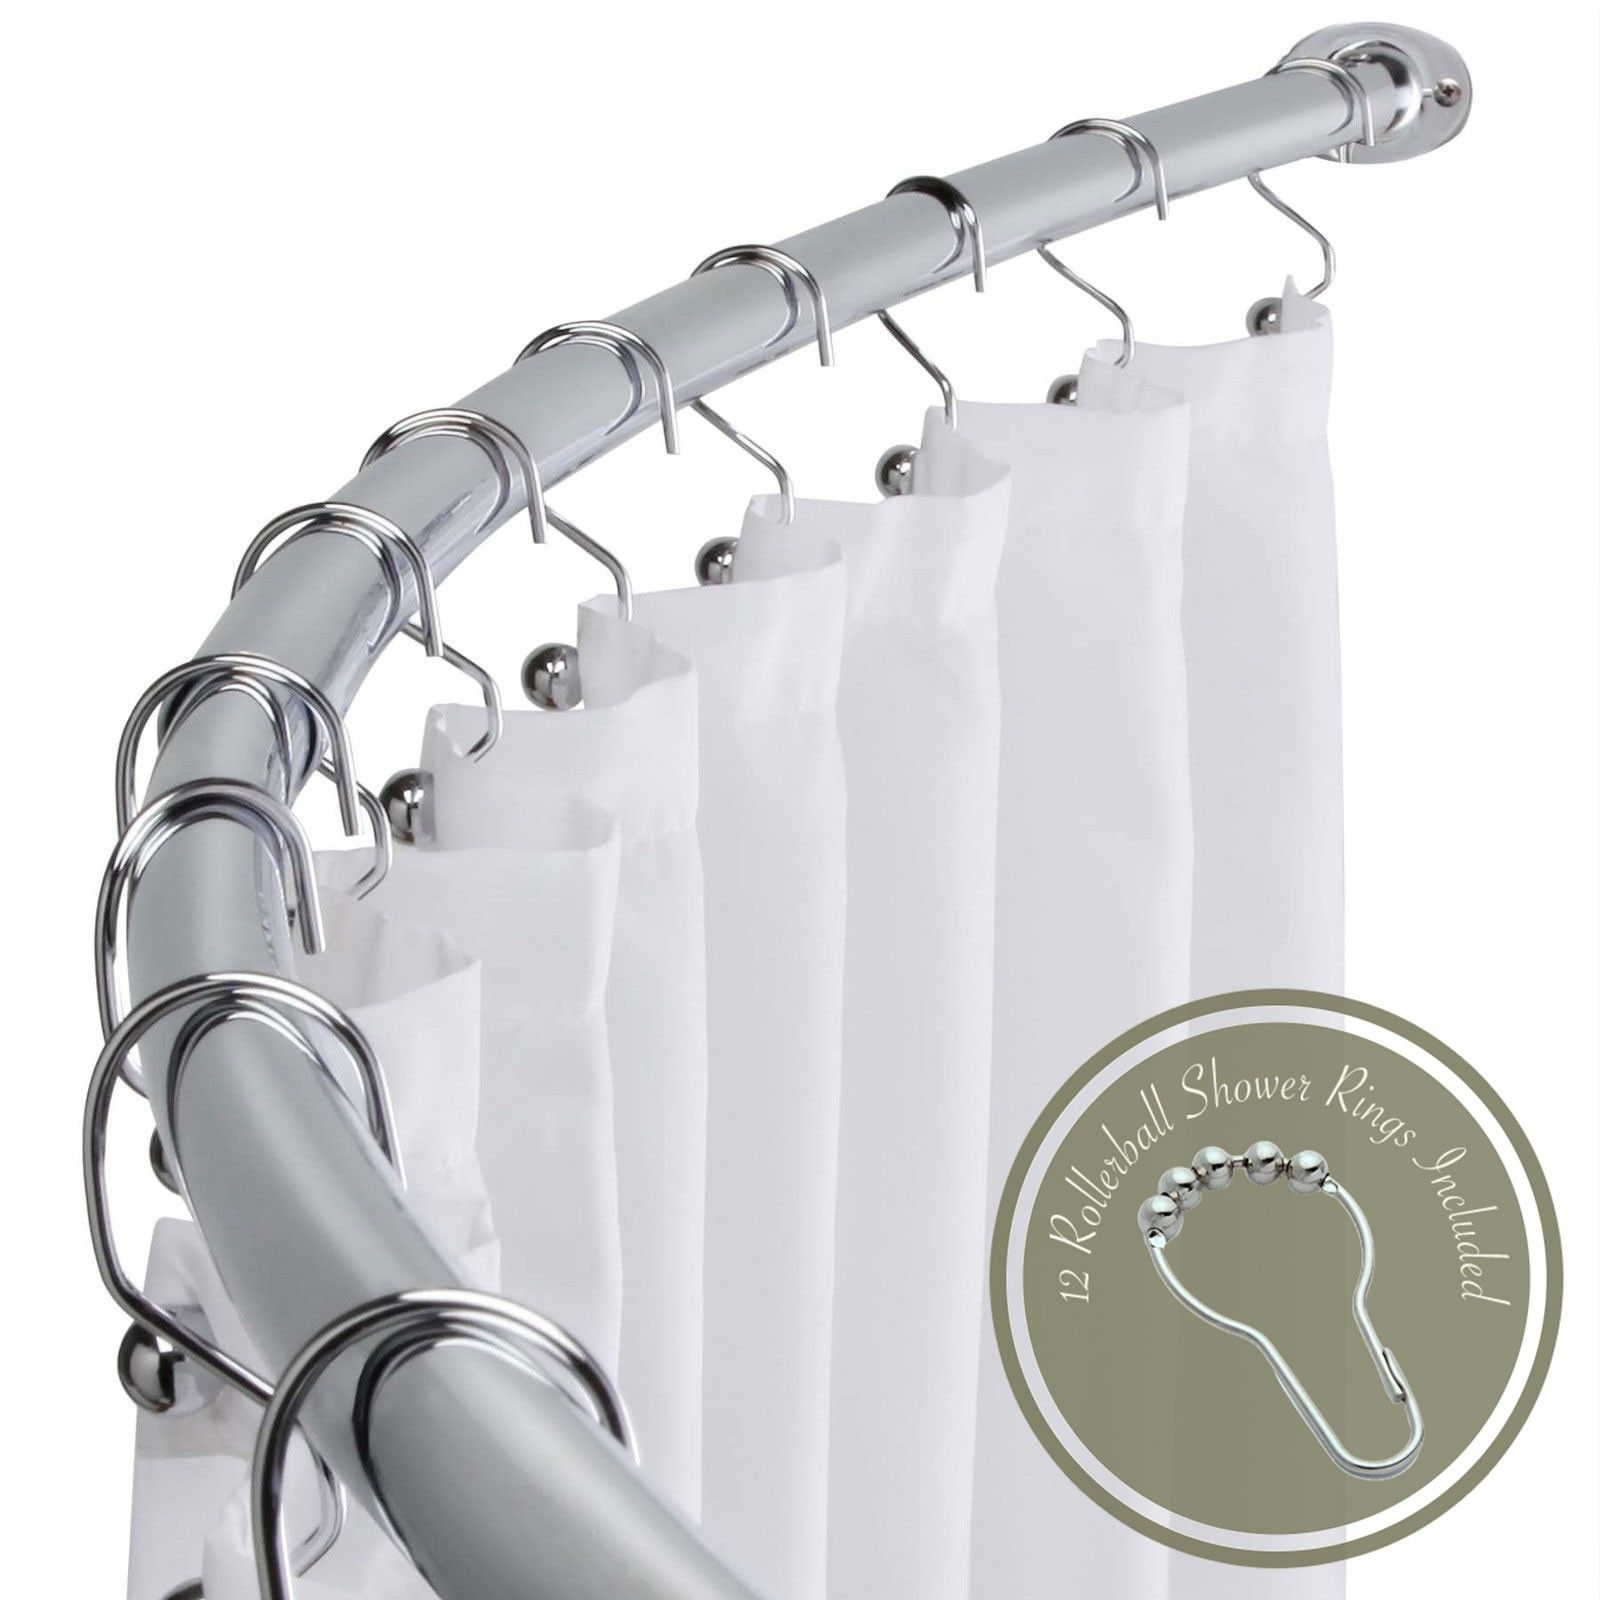 Arista Bath Adjustable 60 72 Opening Curved Shower Rod With Hooks Polished Chrome Shower Rod Polished Chrome Shower Curtain Rods